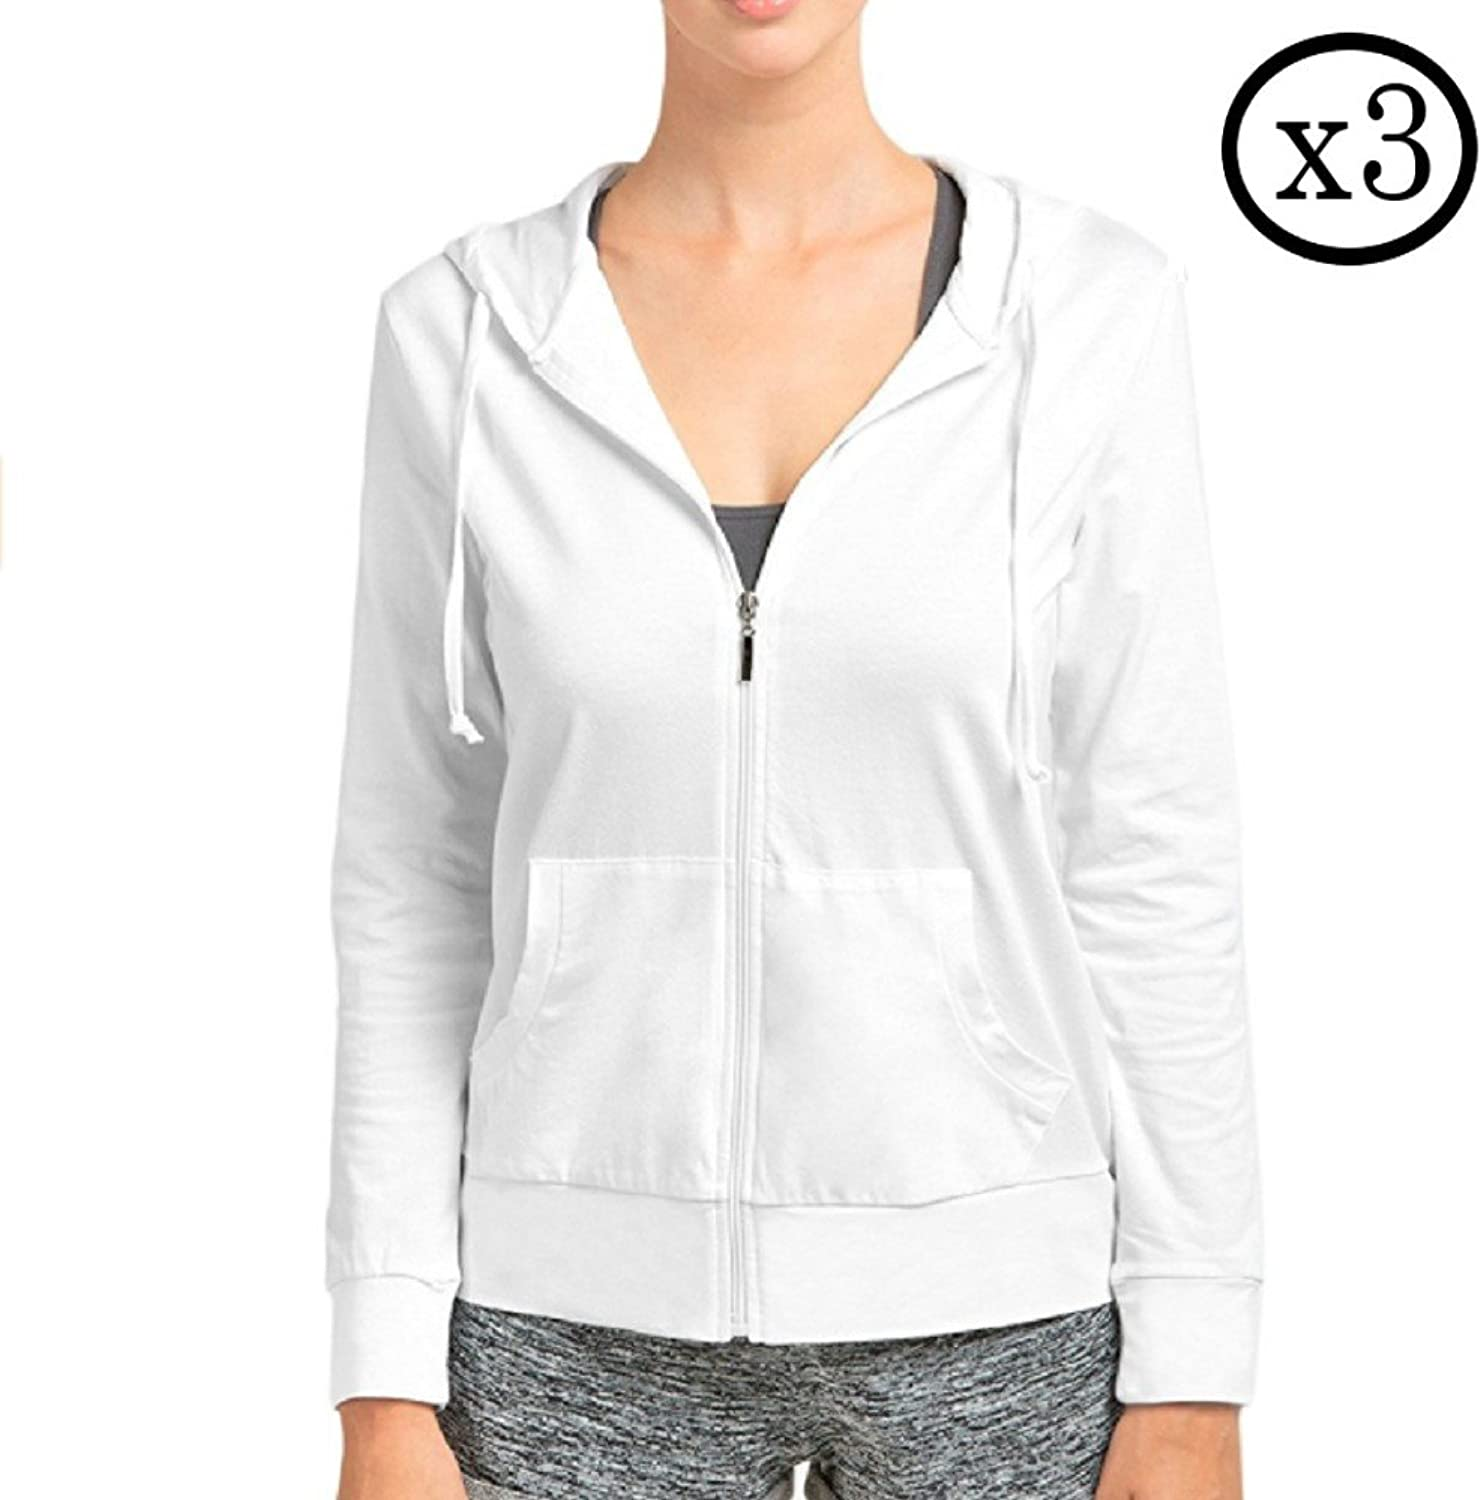 Qraftsy 3 Pack Womens Cotton ZipUp Hoodie Jacket  Bulk Wholesale